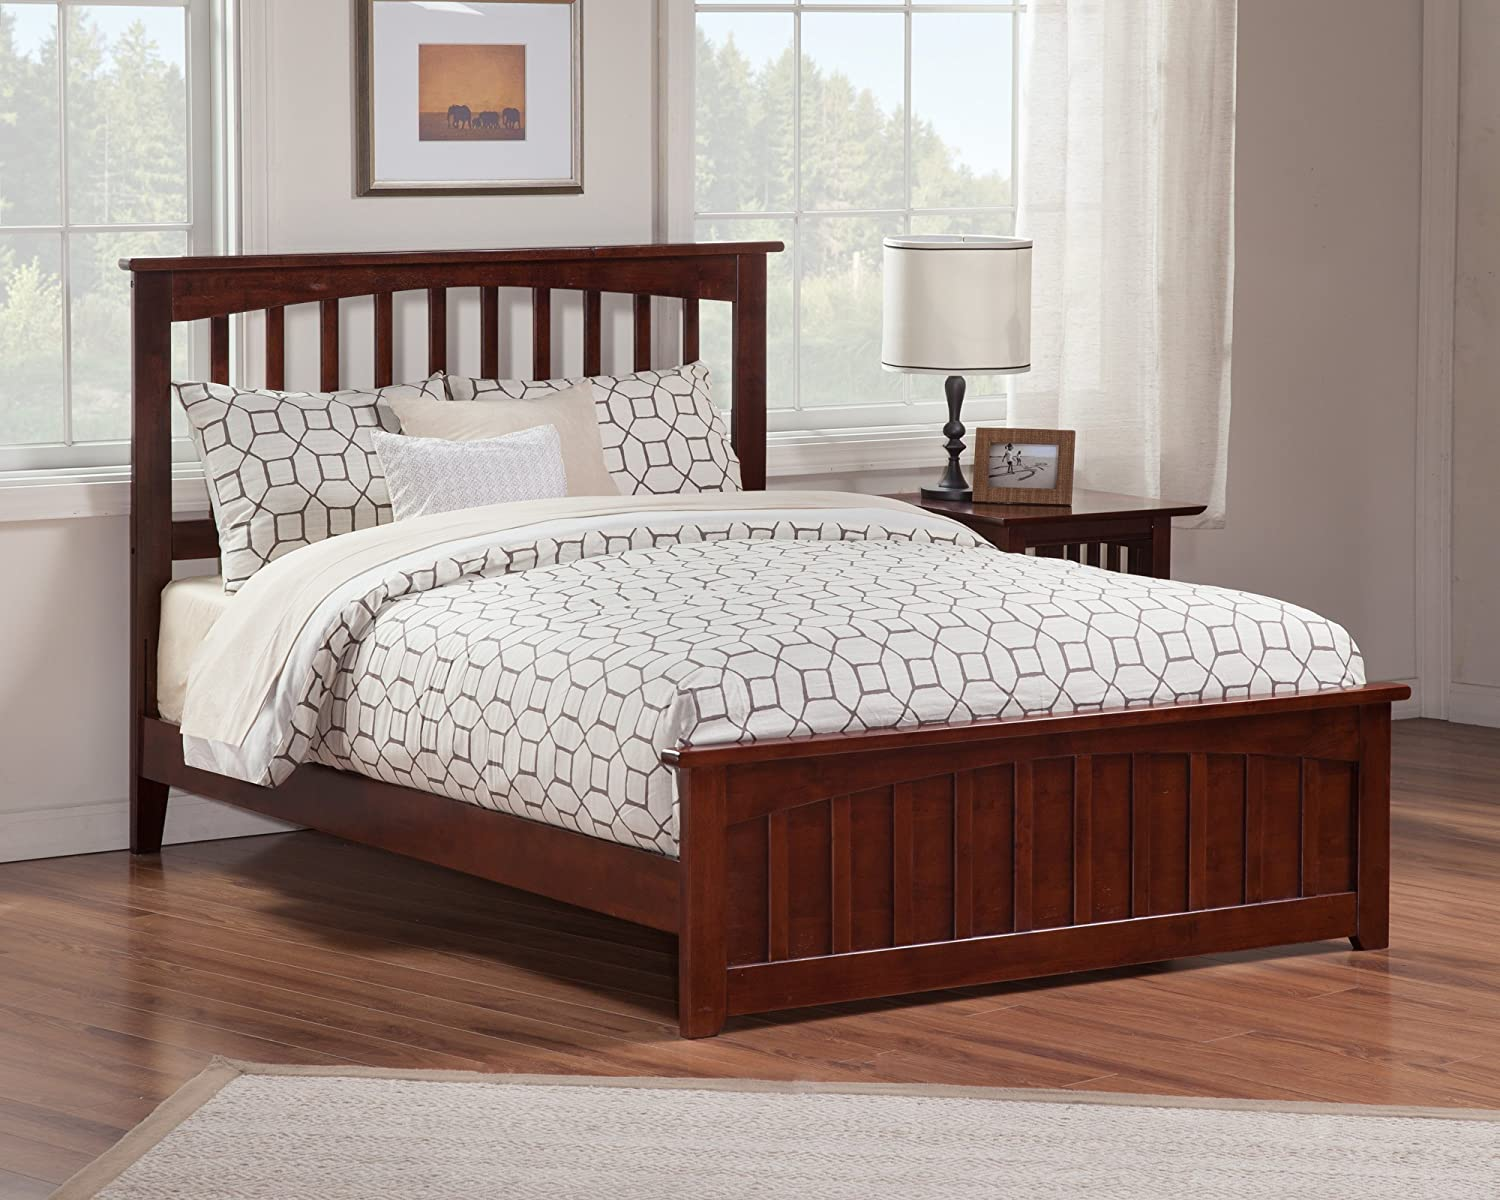 Amazon Atlantic Furniture Mission Bed With Matching Foot Board